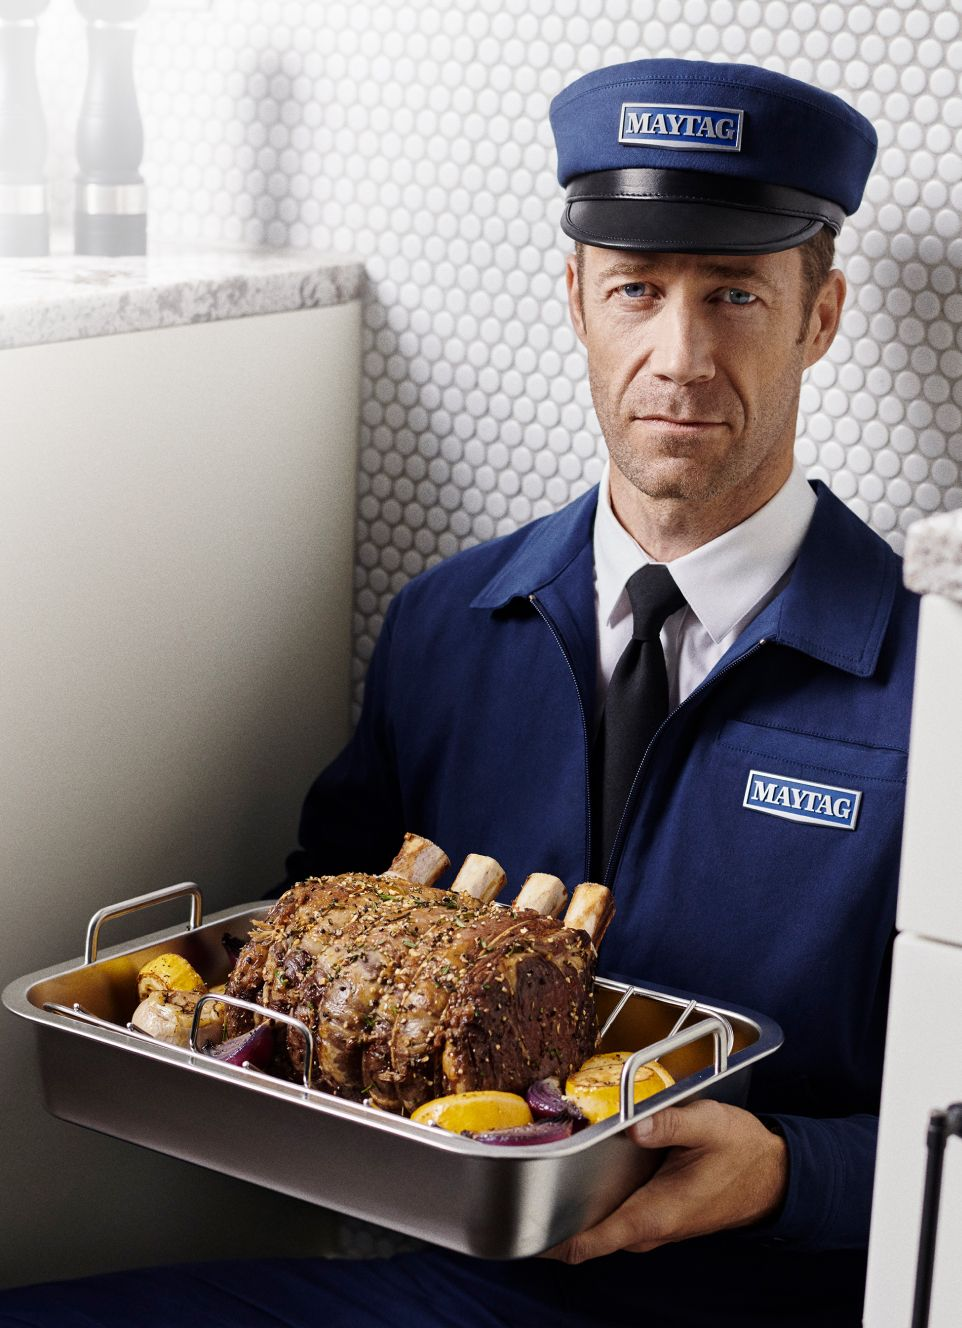 Maytag man holding a rack of lamb.